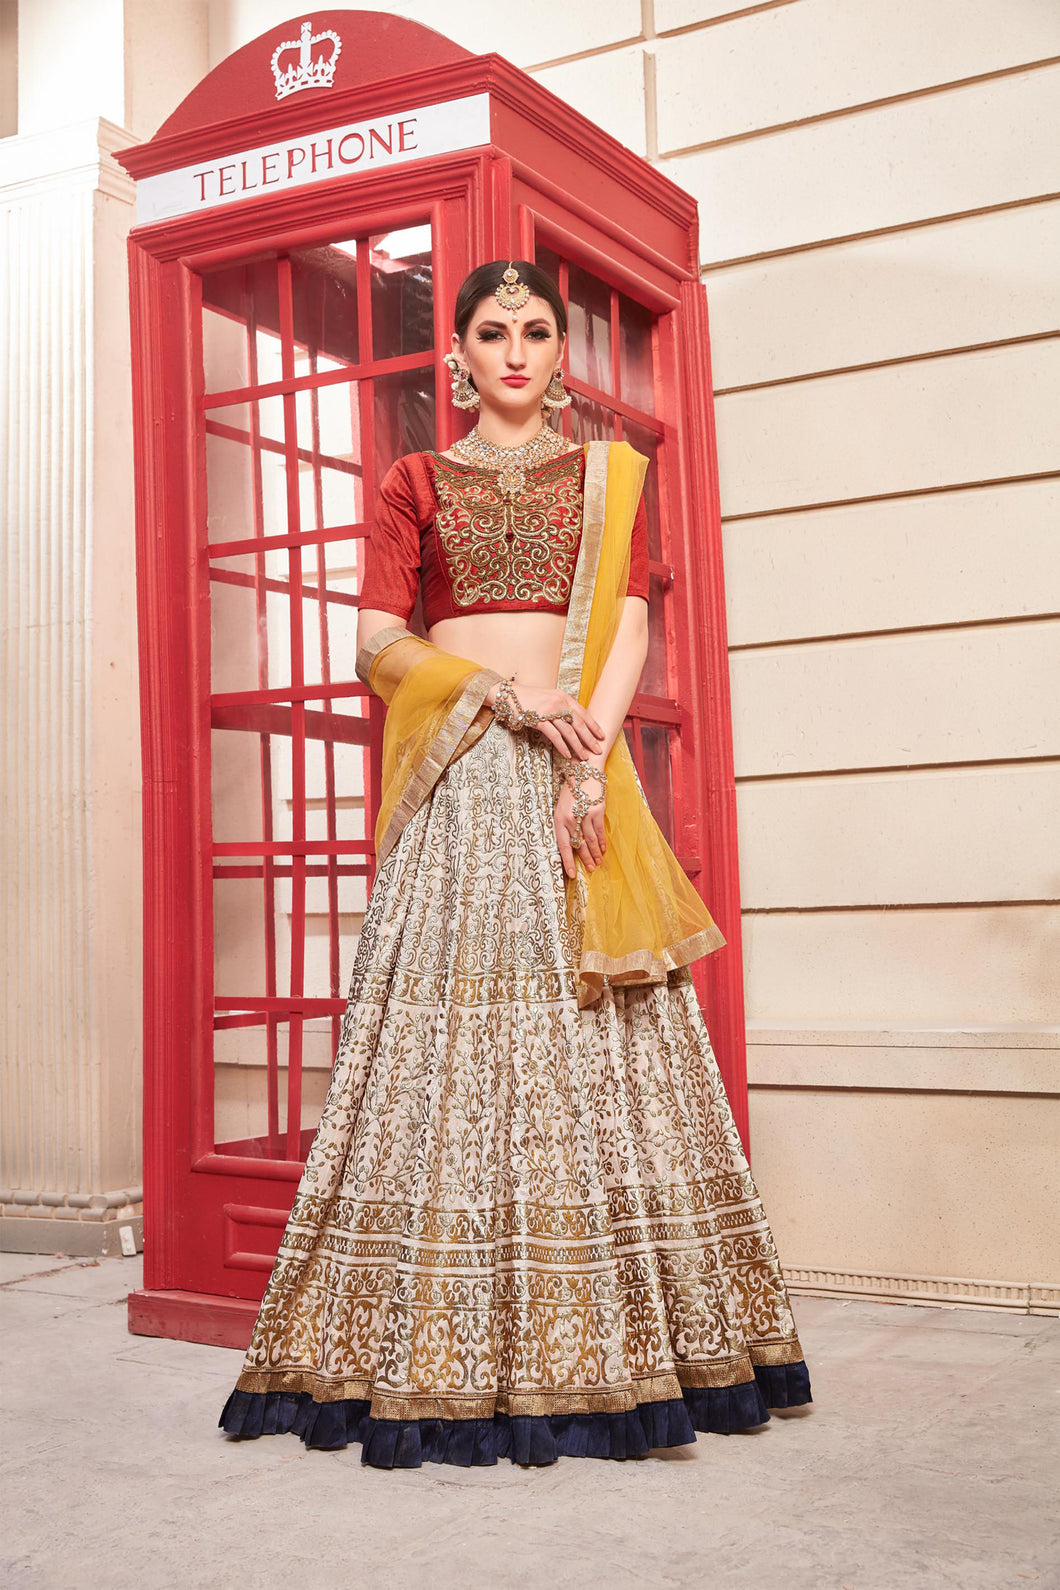 Pleasurable Powder Pink Phantom Silk Metallic Foil & Hand Work With Excellent Lahenga Choli